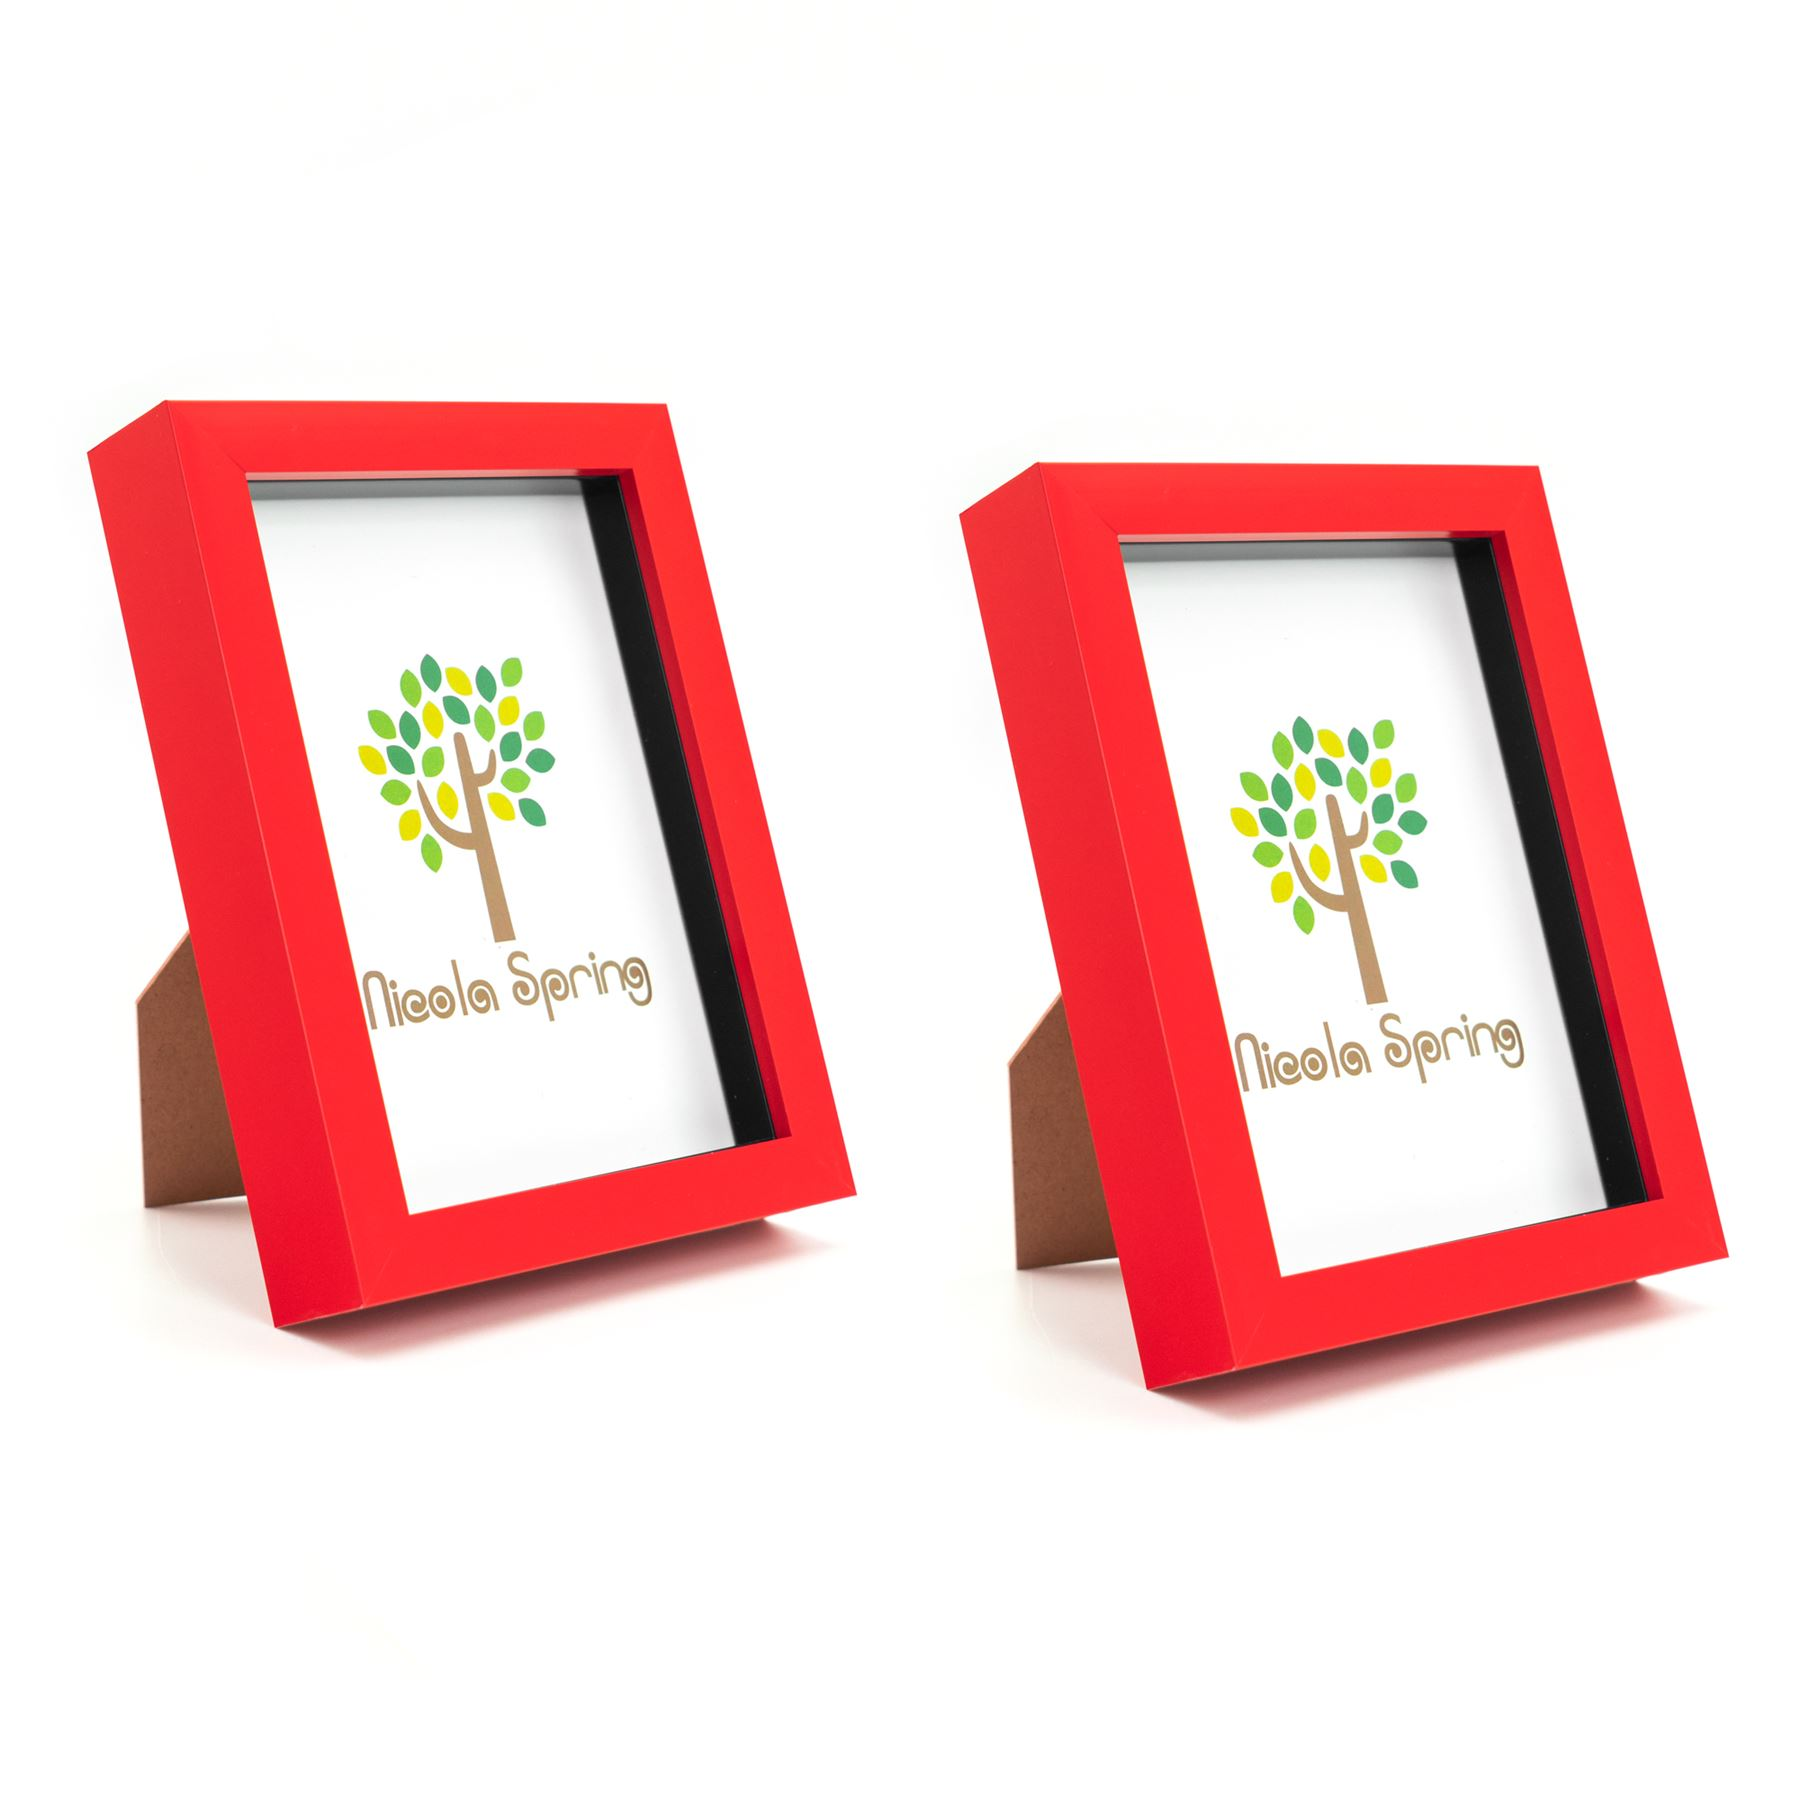 Box Picture Frame Deep 3D Photo Display 4x6 Inch Standing Hanging Red x2